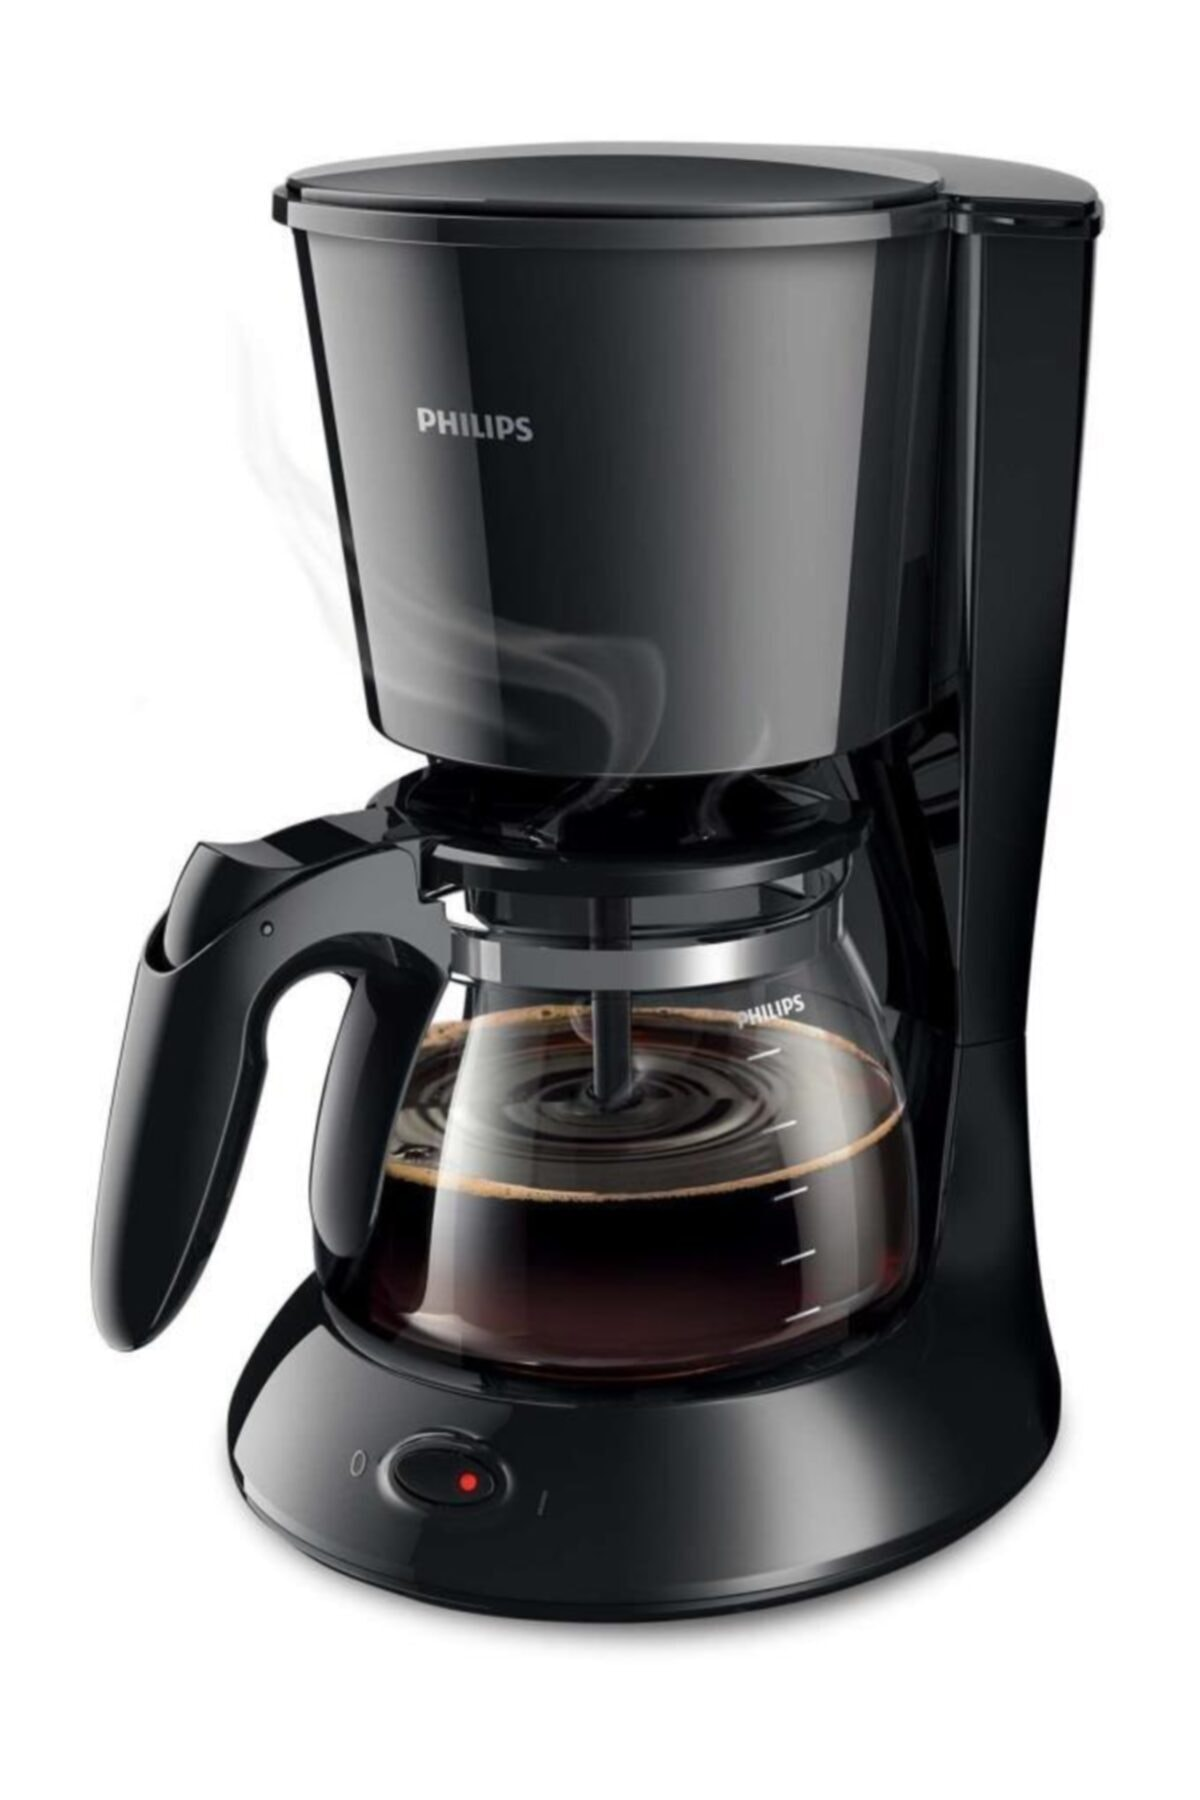 Philips Hd7461/20 Daily Collection Siyah Filtre Kahve Makinesi 1